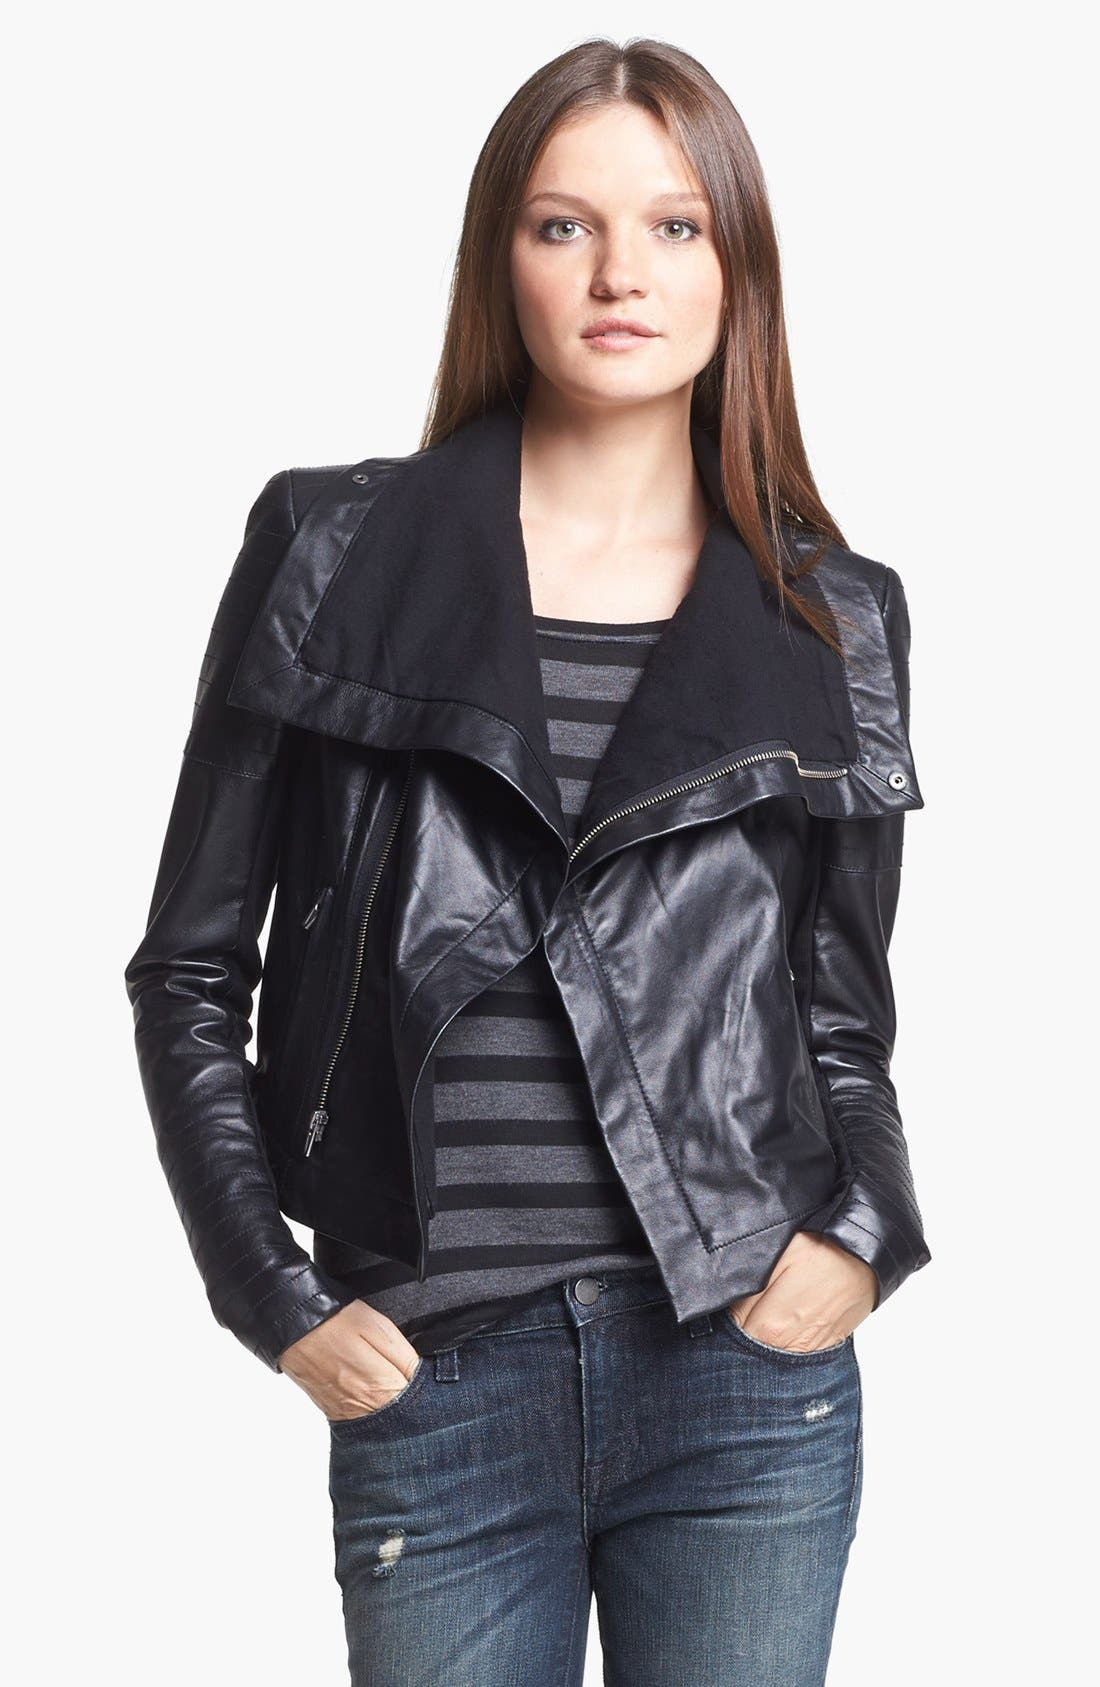 Alternate Image 1 Selected - Veda 'Max' Leather Moto Jacket